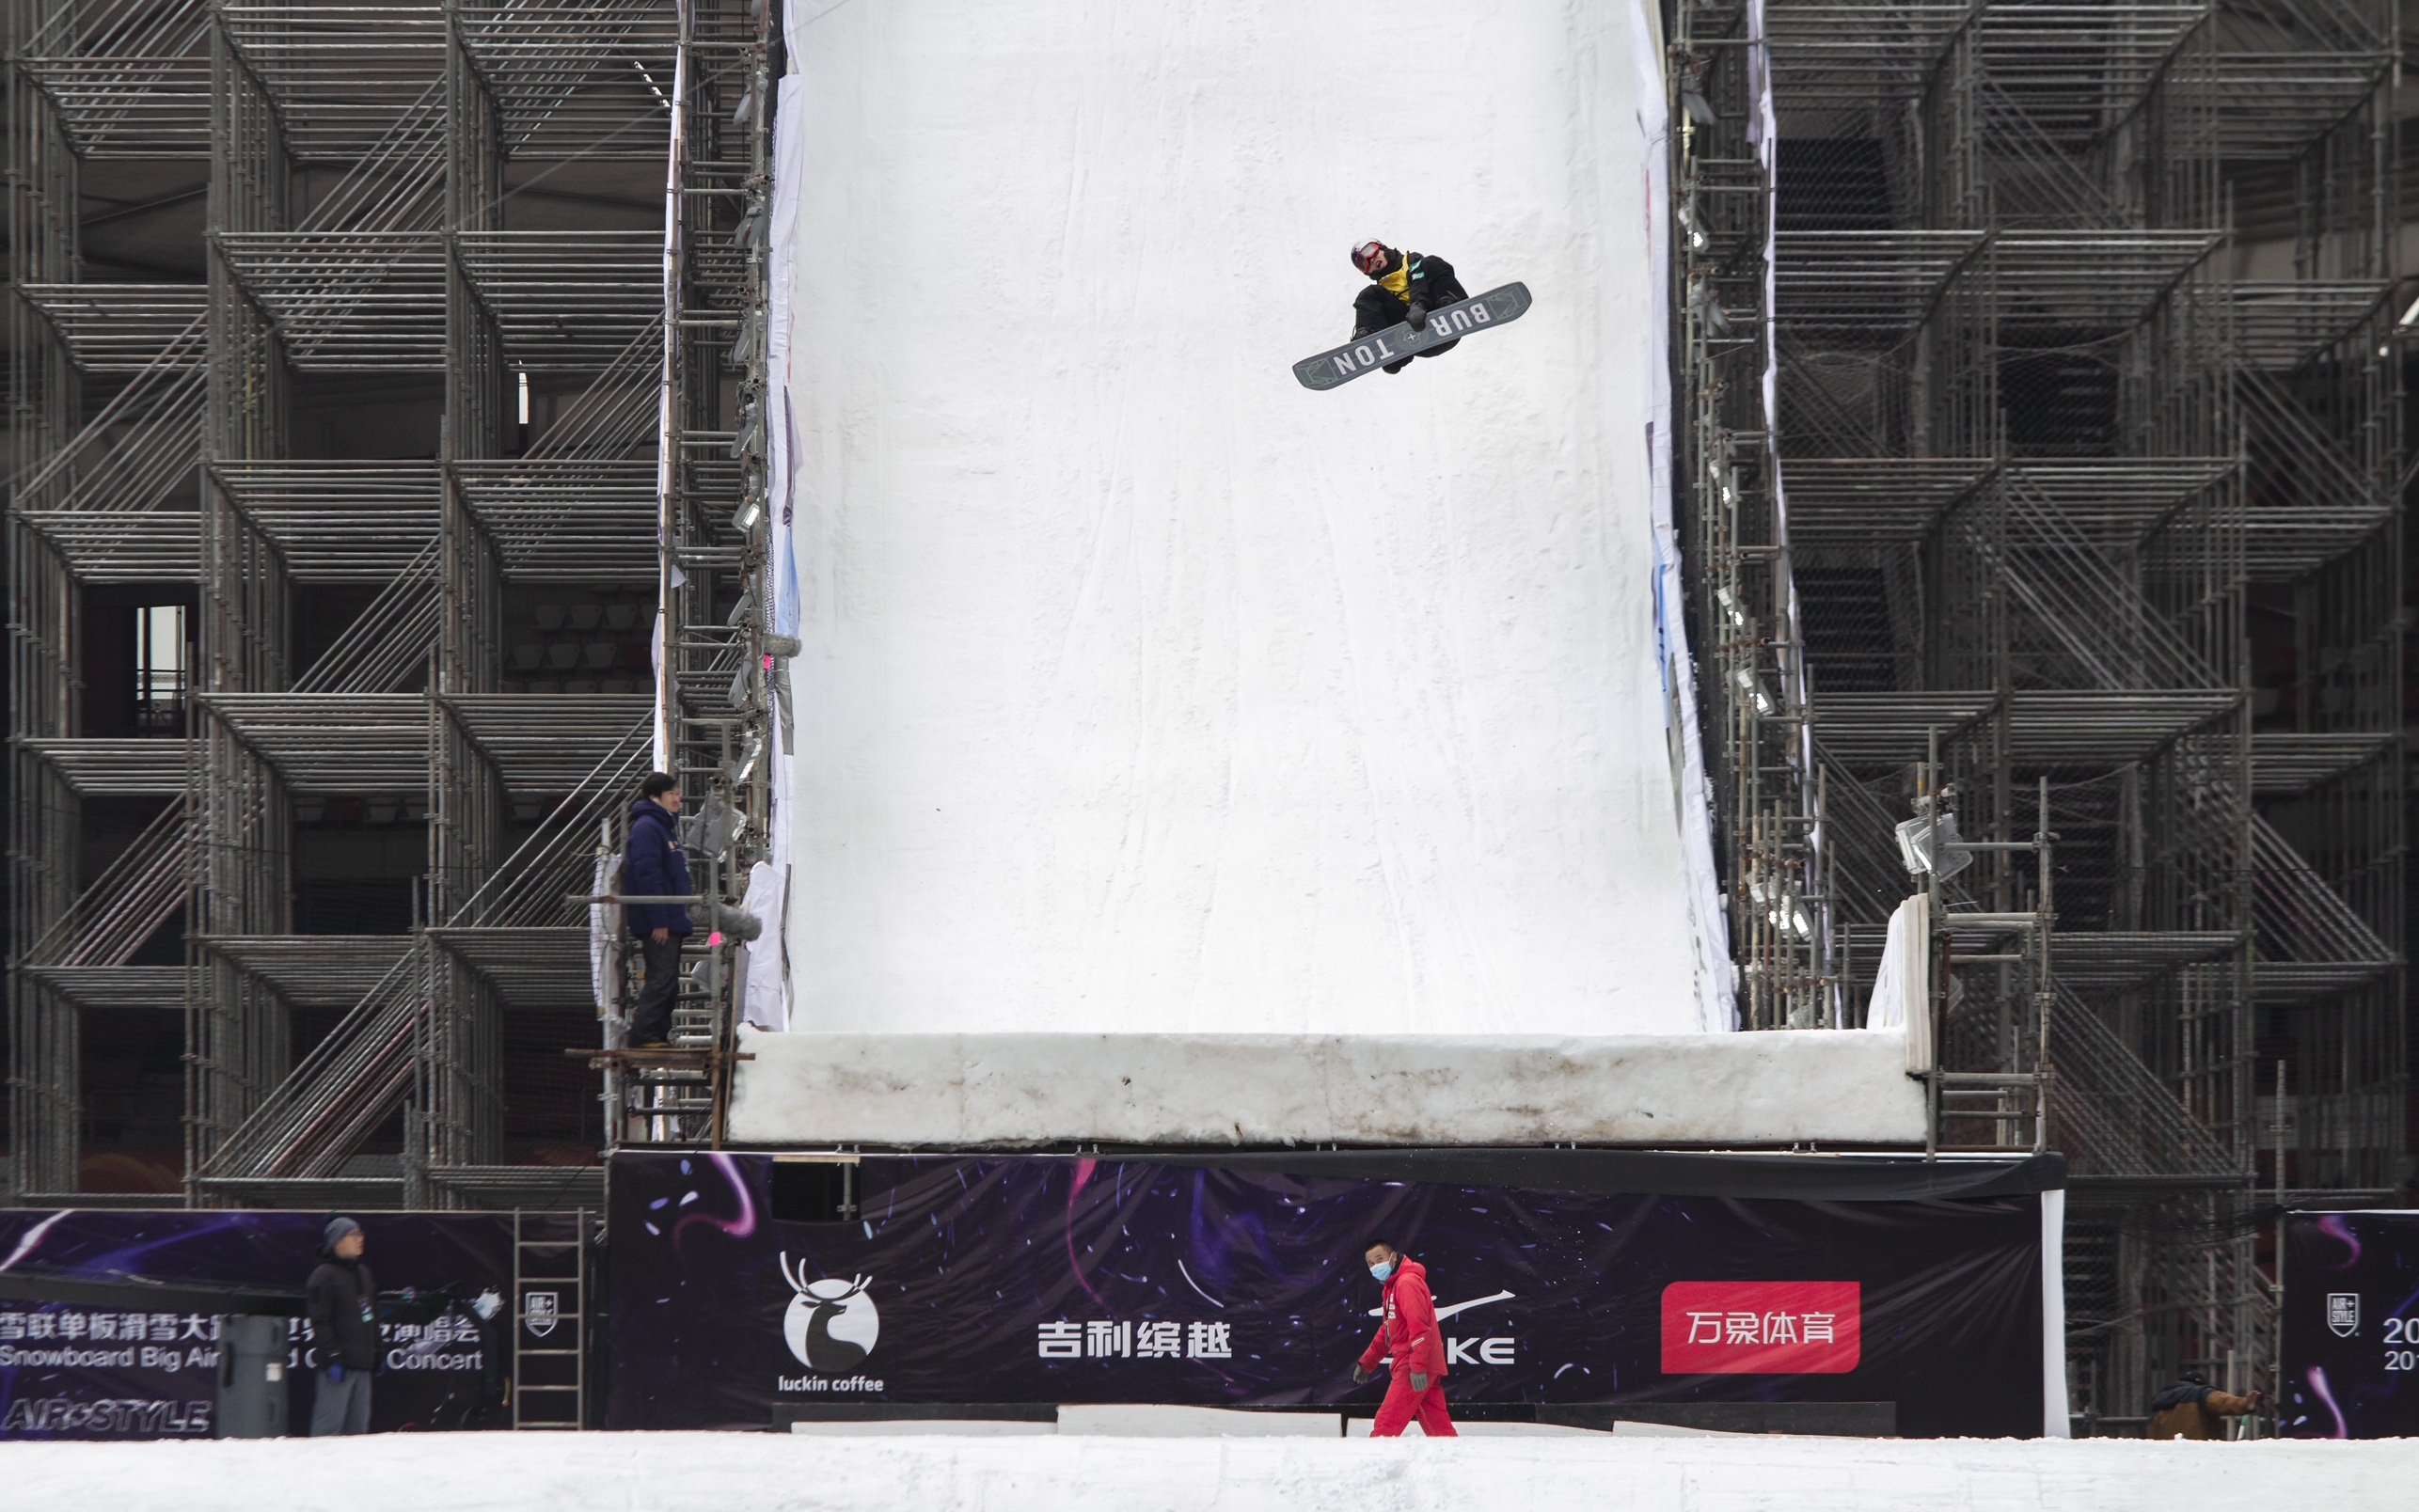 Takeru Otsuka qualifying at Beijing Air & Style.